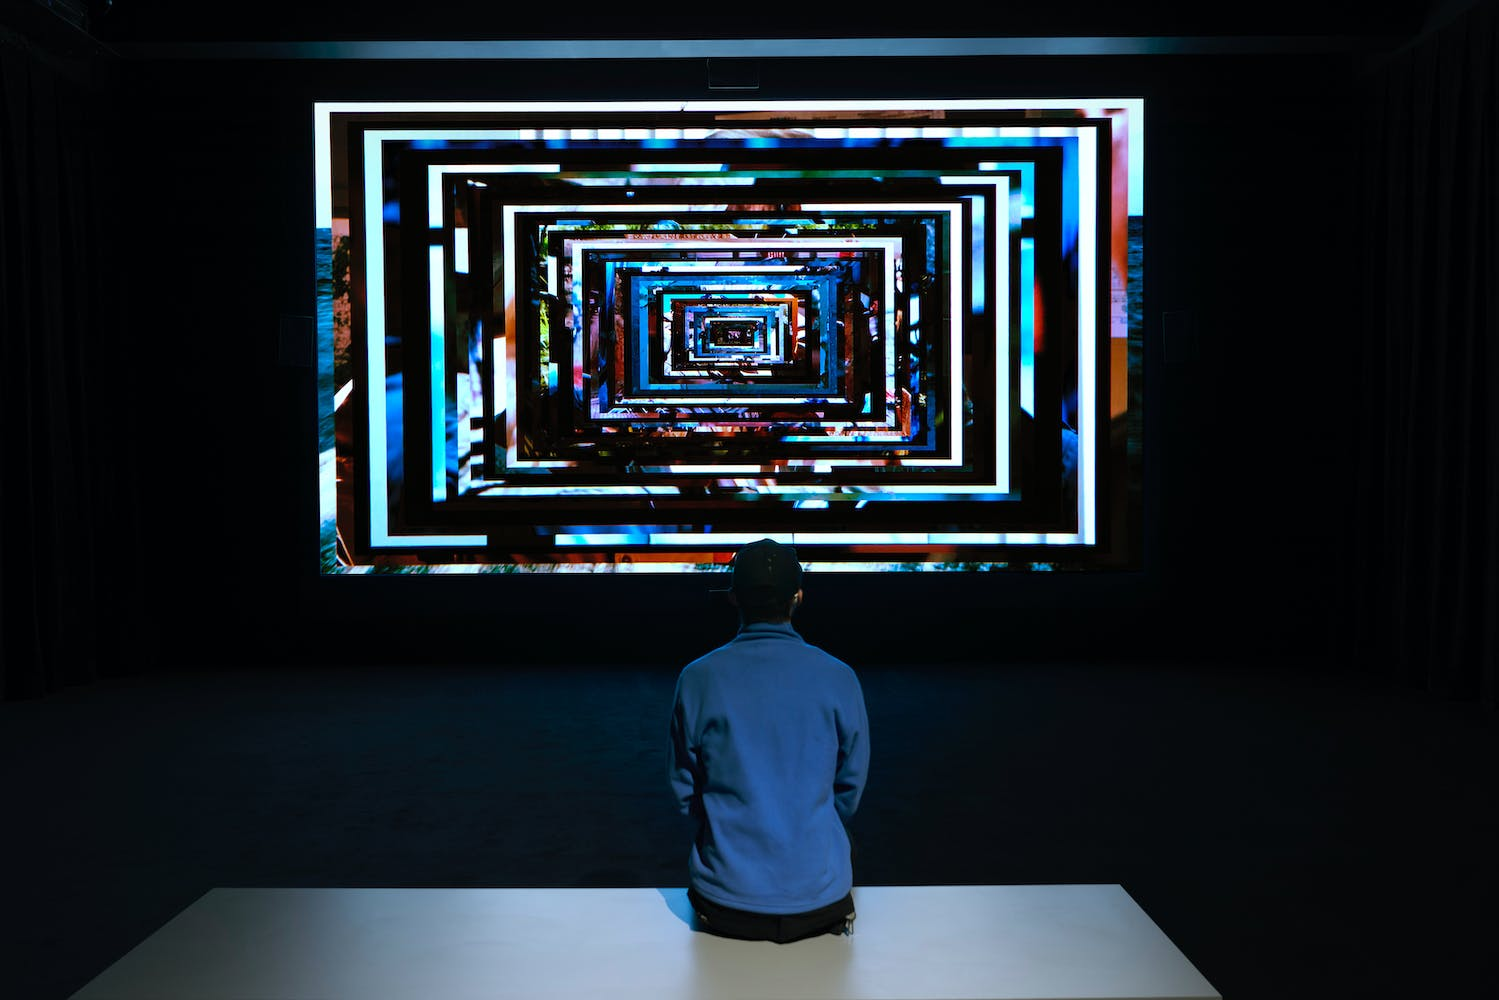 Image in dark room with person on bench watching large projected movie featuring geometric colorful nested rectangles